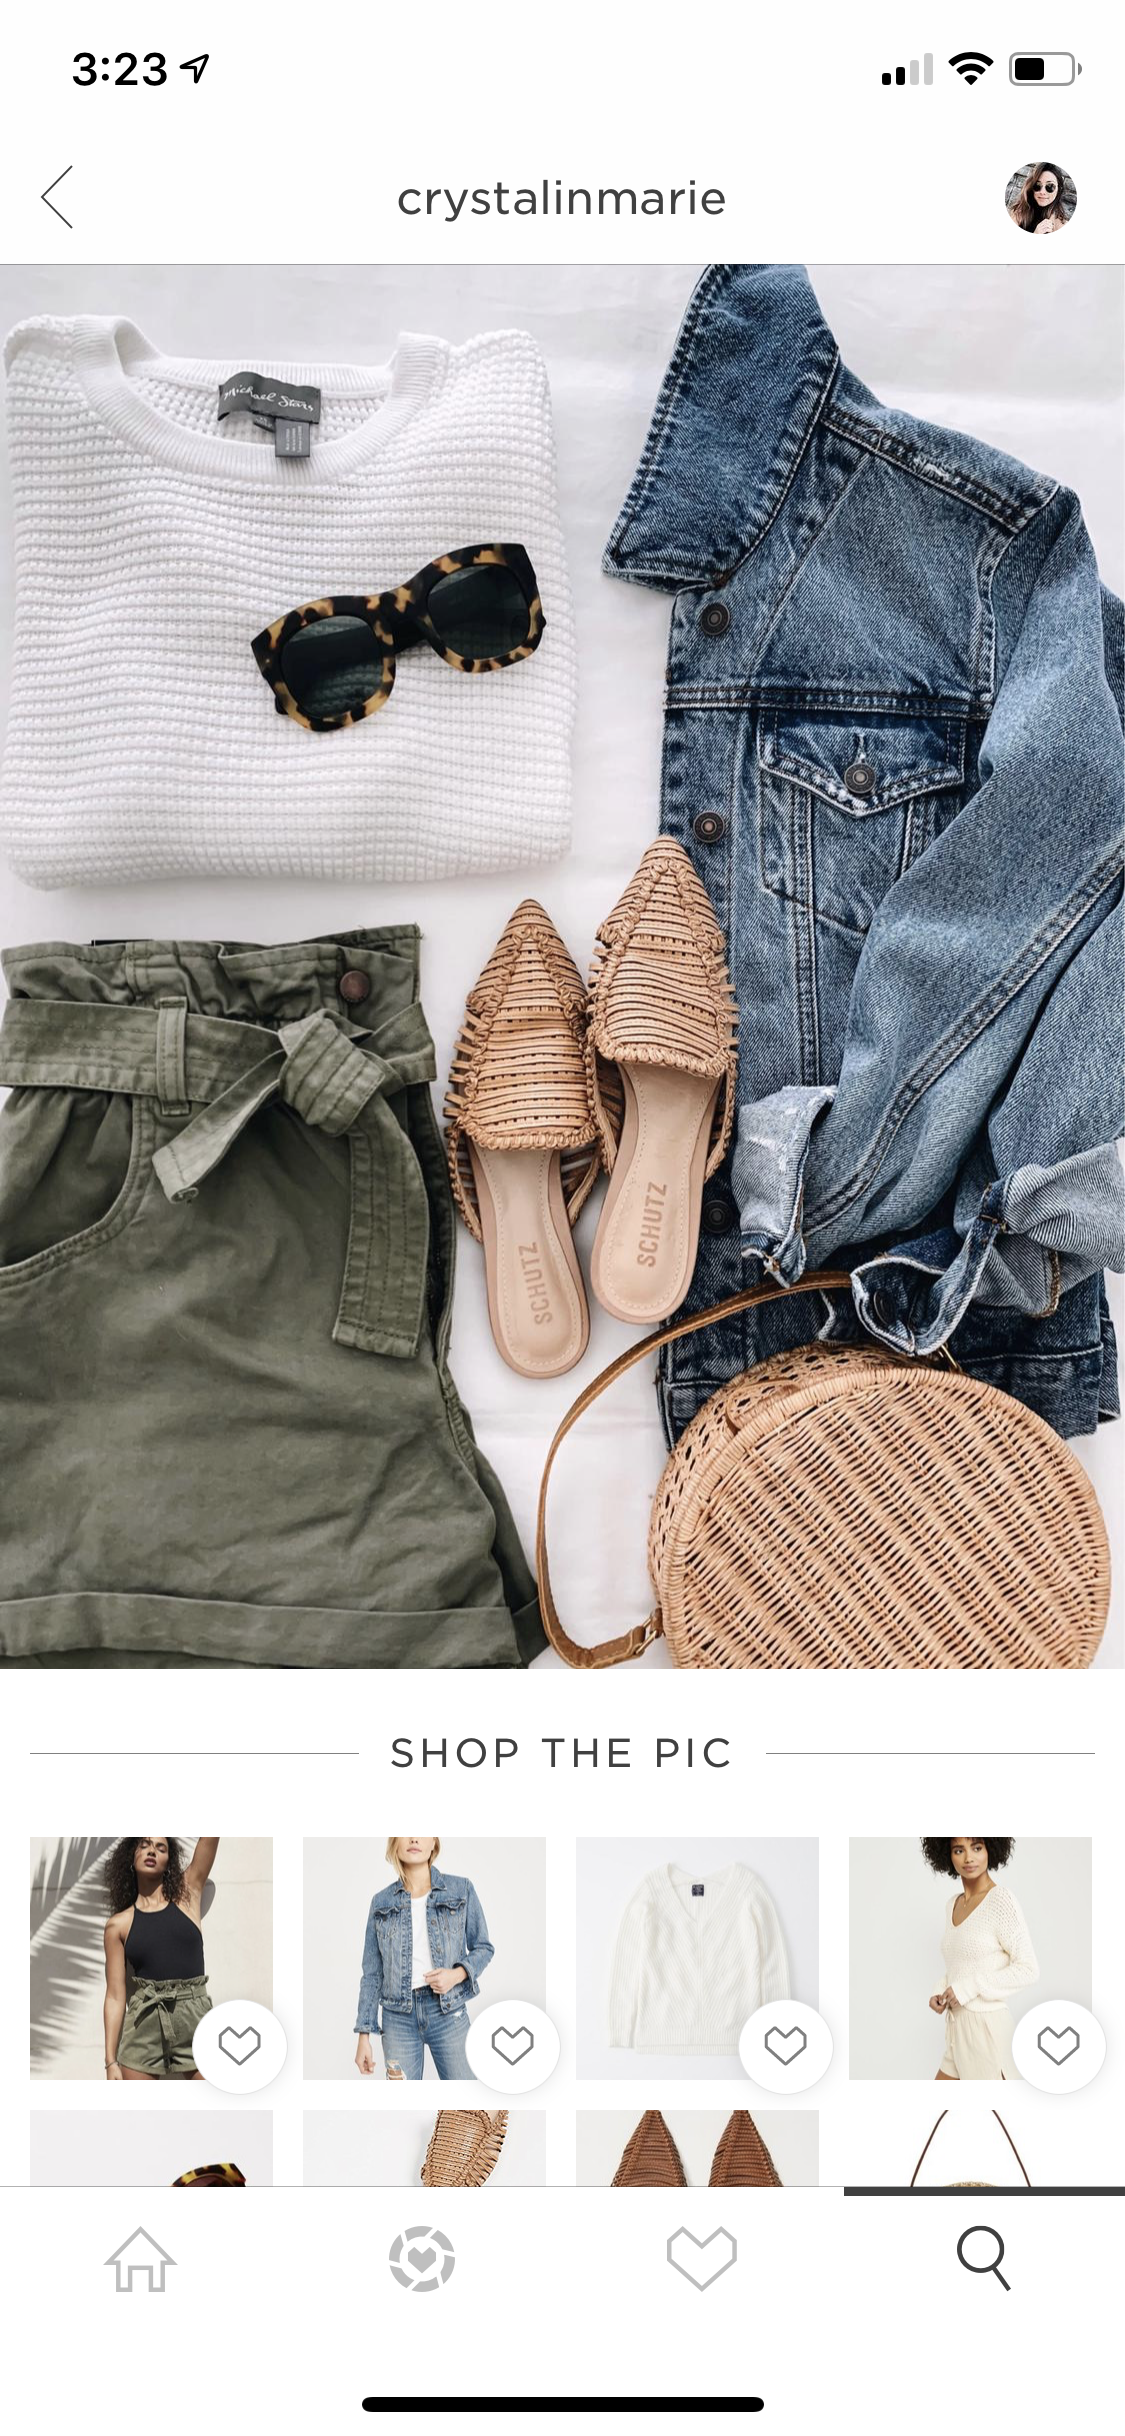 Click on photos and shop instantly